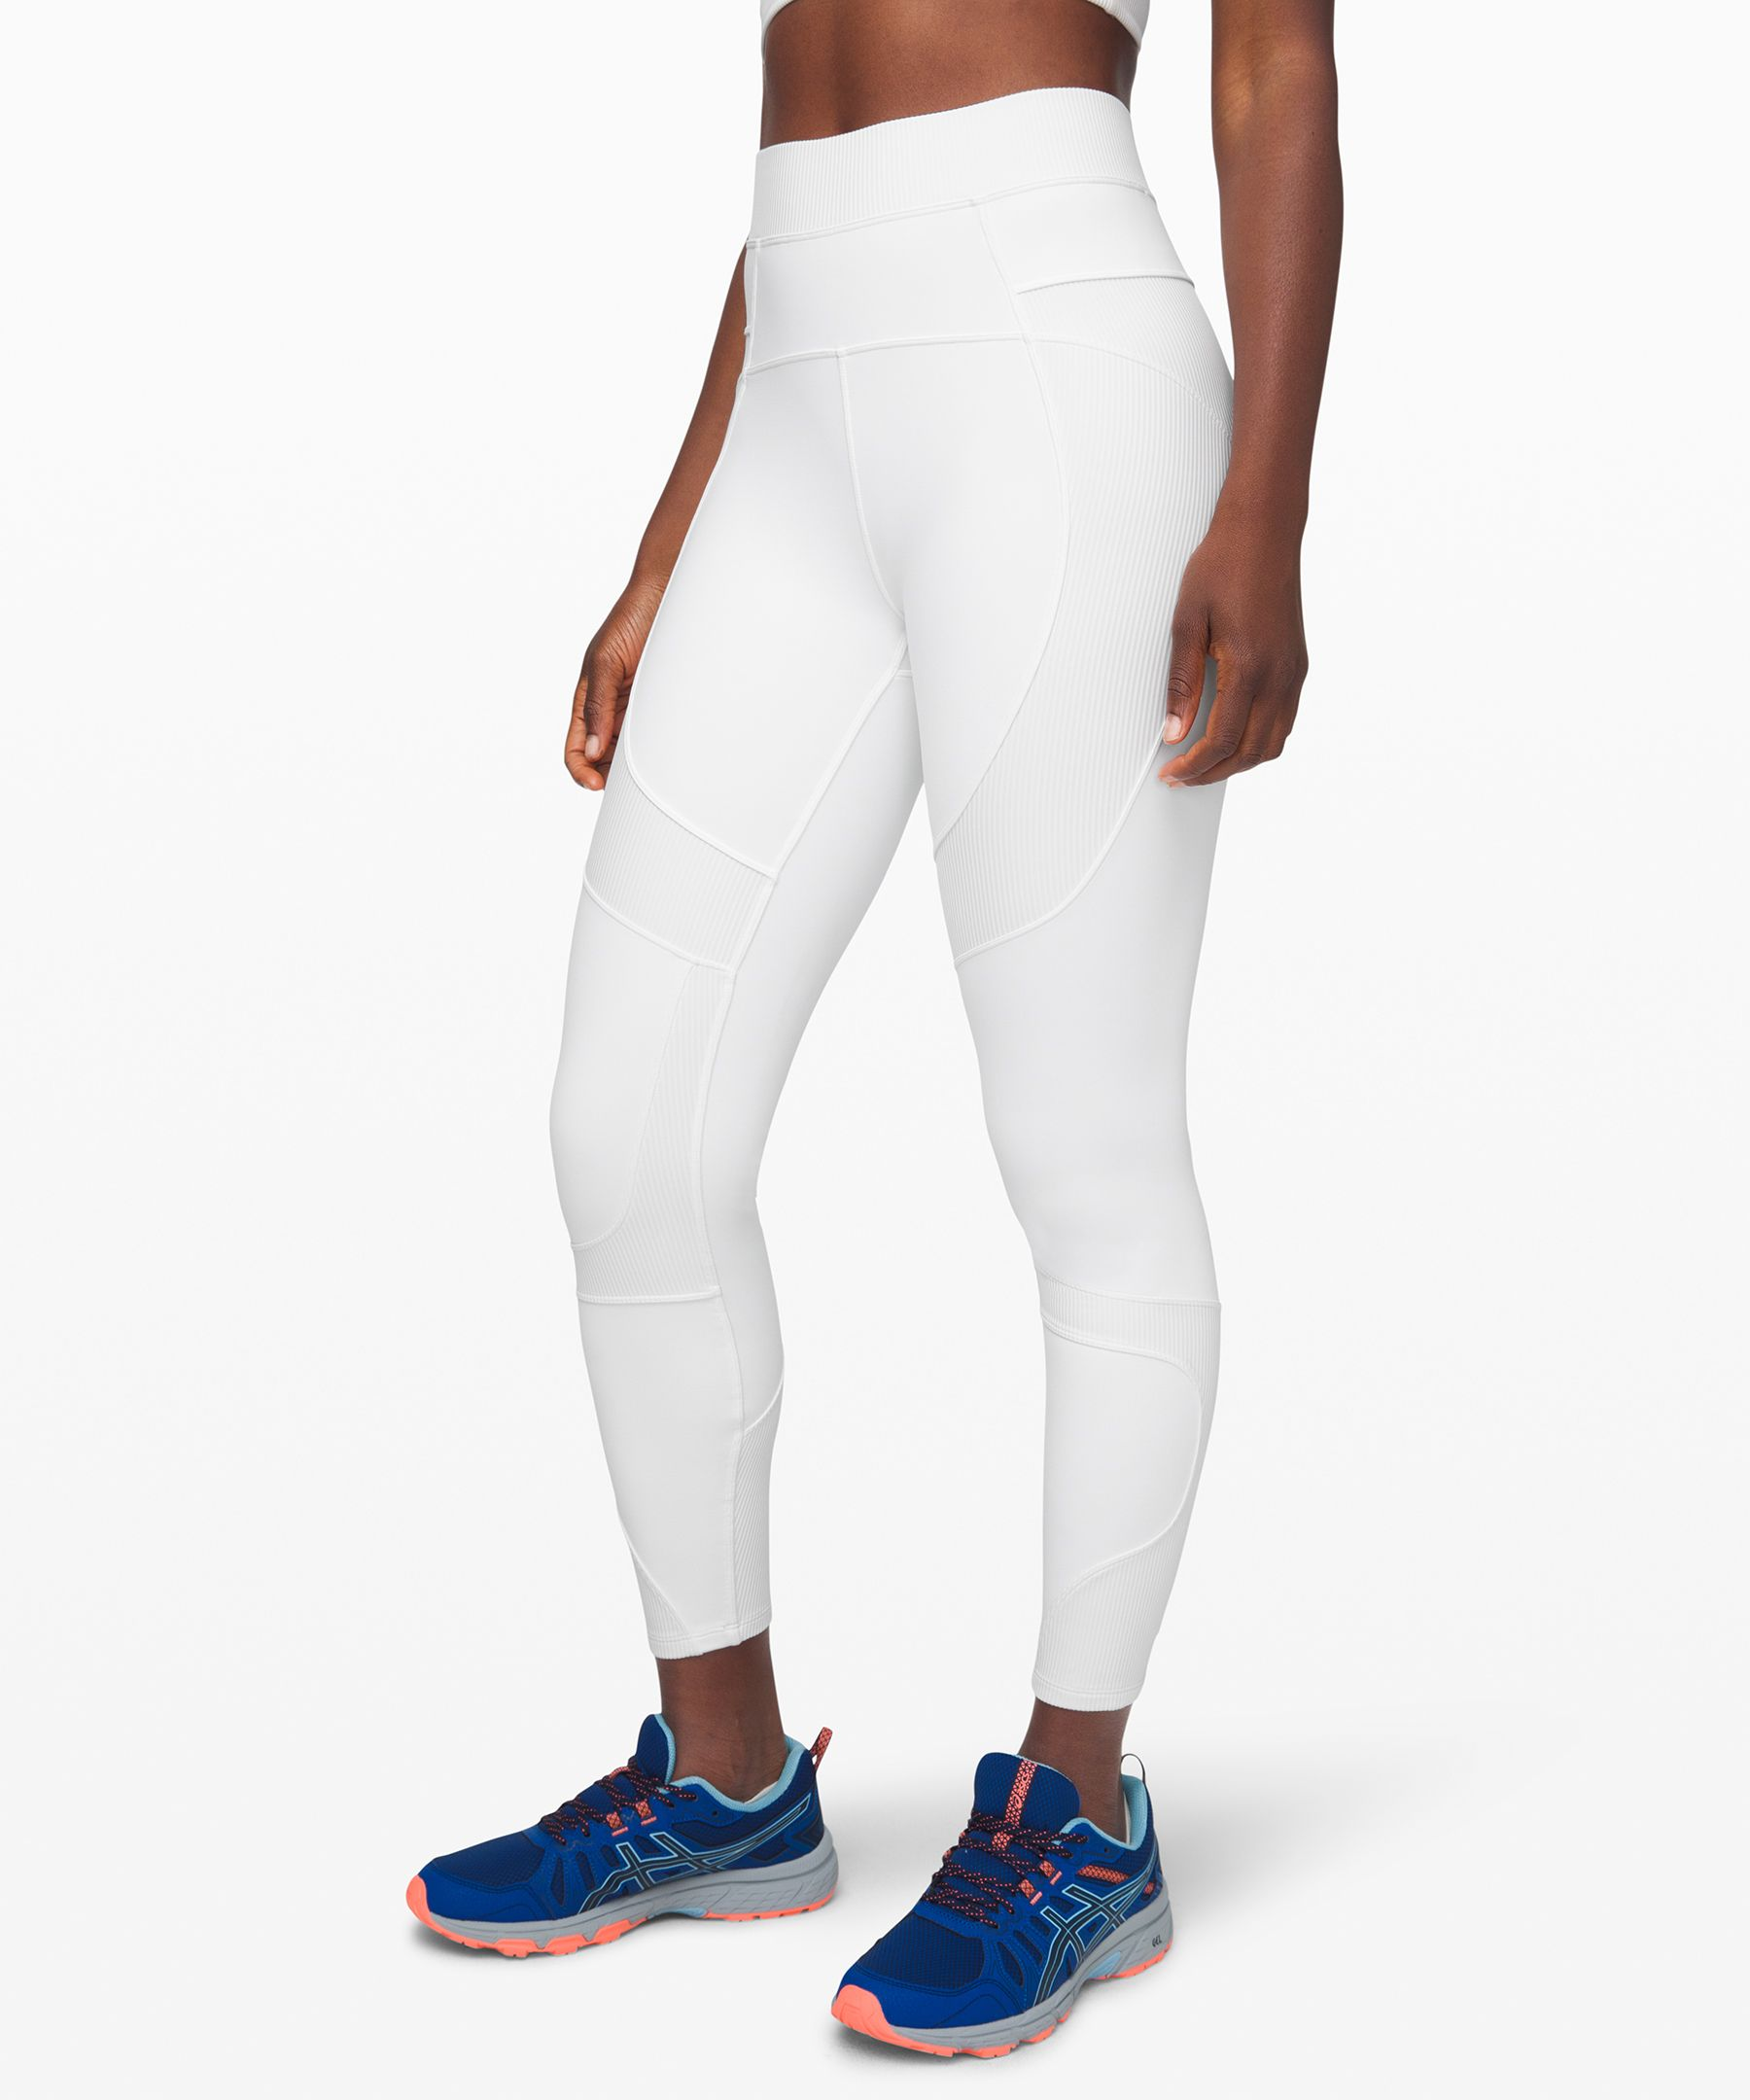 New Ambition Super High-Rise Tight 25